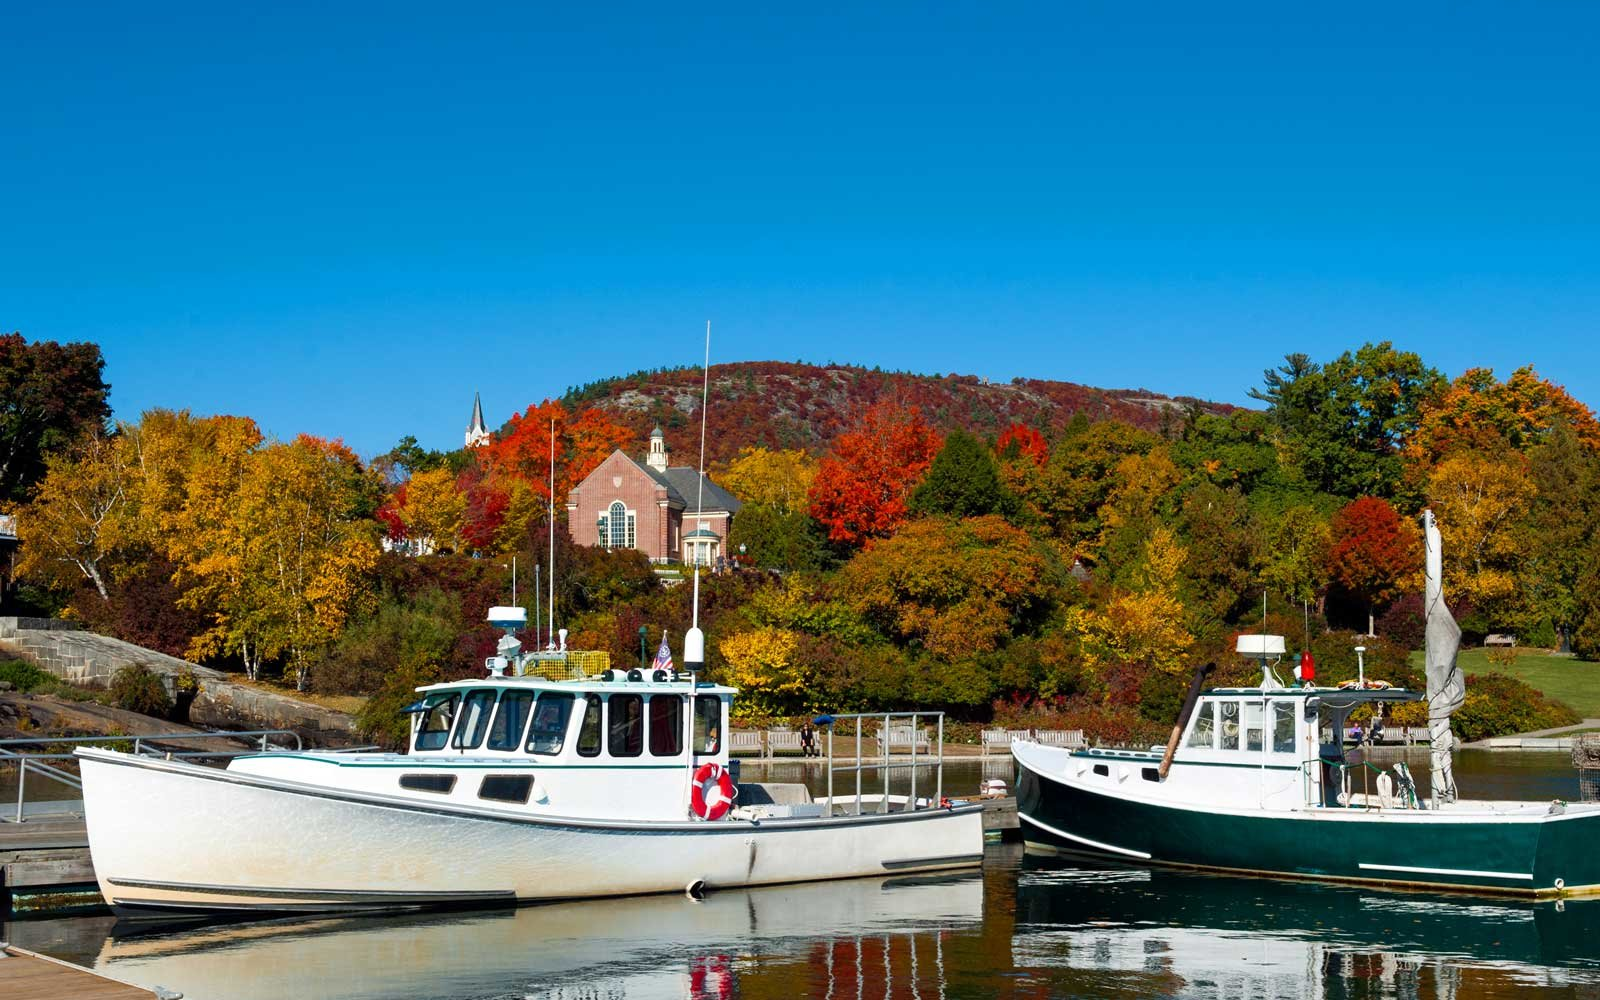 Lobster boats in Camden, Maine Harbor with fall foliage